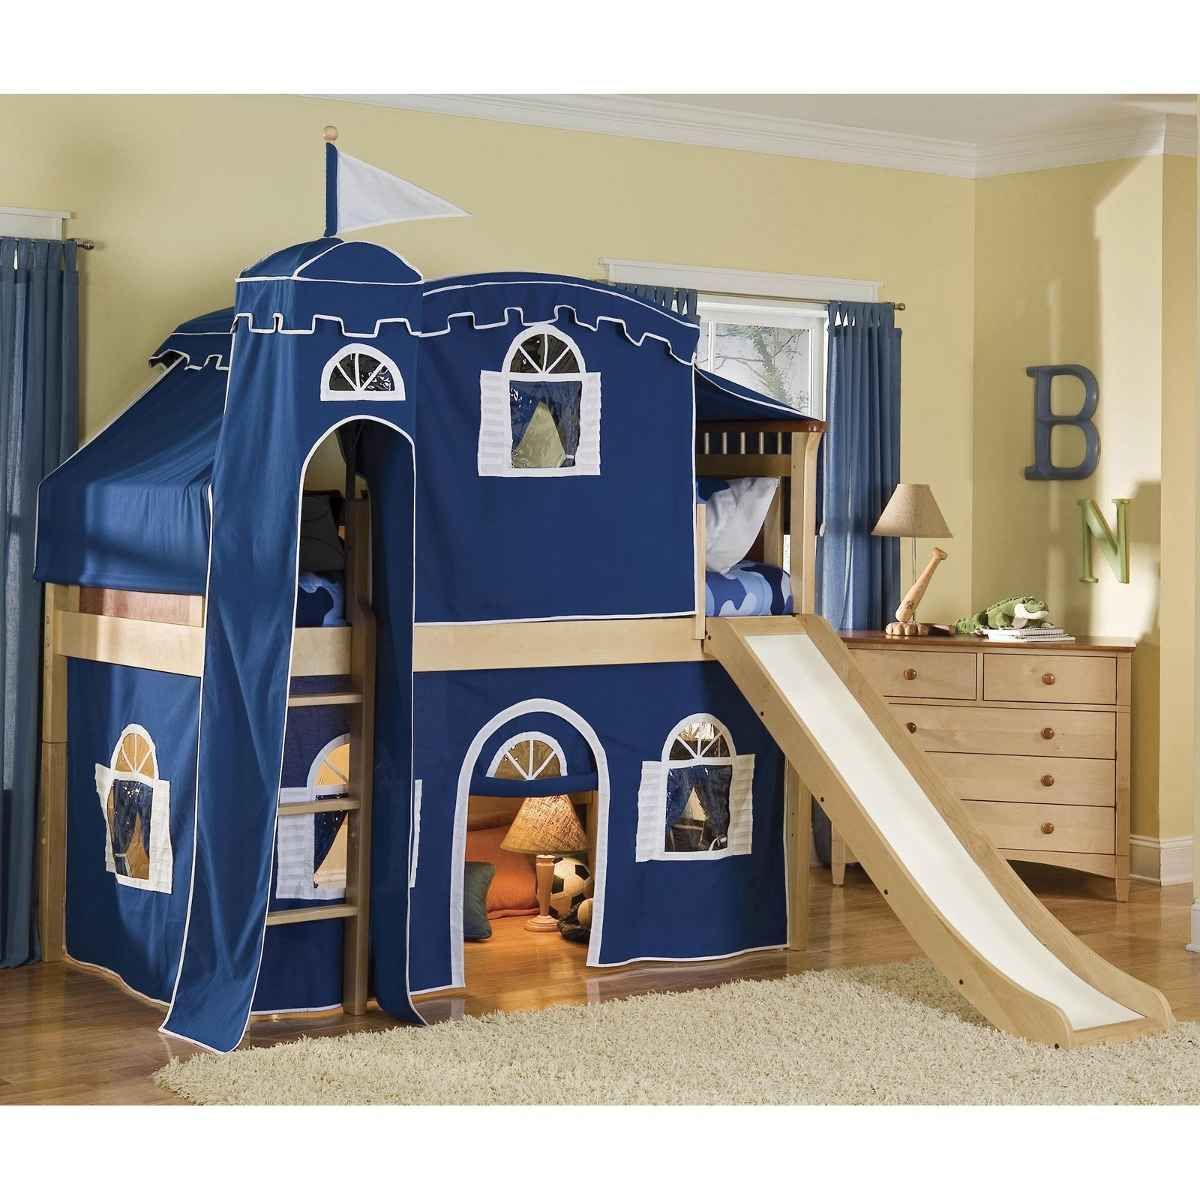 Bolton Furniture Bennington Twin Low Loft Tent Bed with Top Tent and Built-In Ladder  sc 1 st  Pinterest & Bunk Bed Tents For Boys | Blue Tent Castle Bed for Children ...